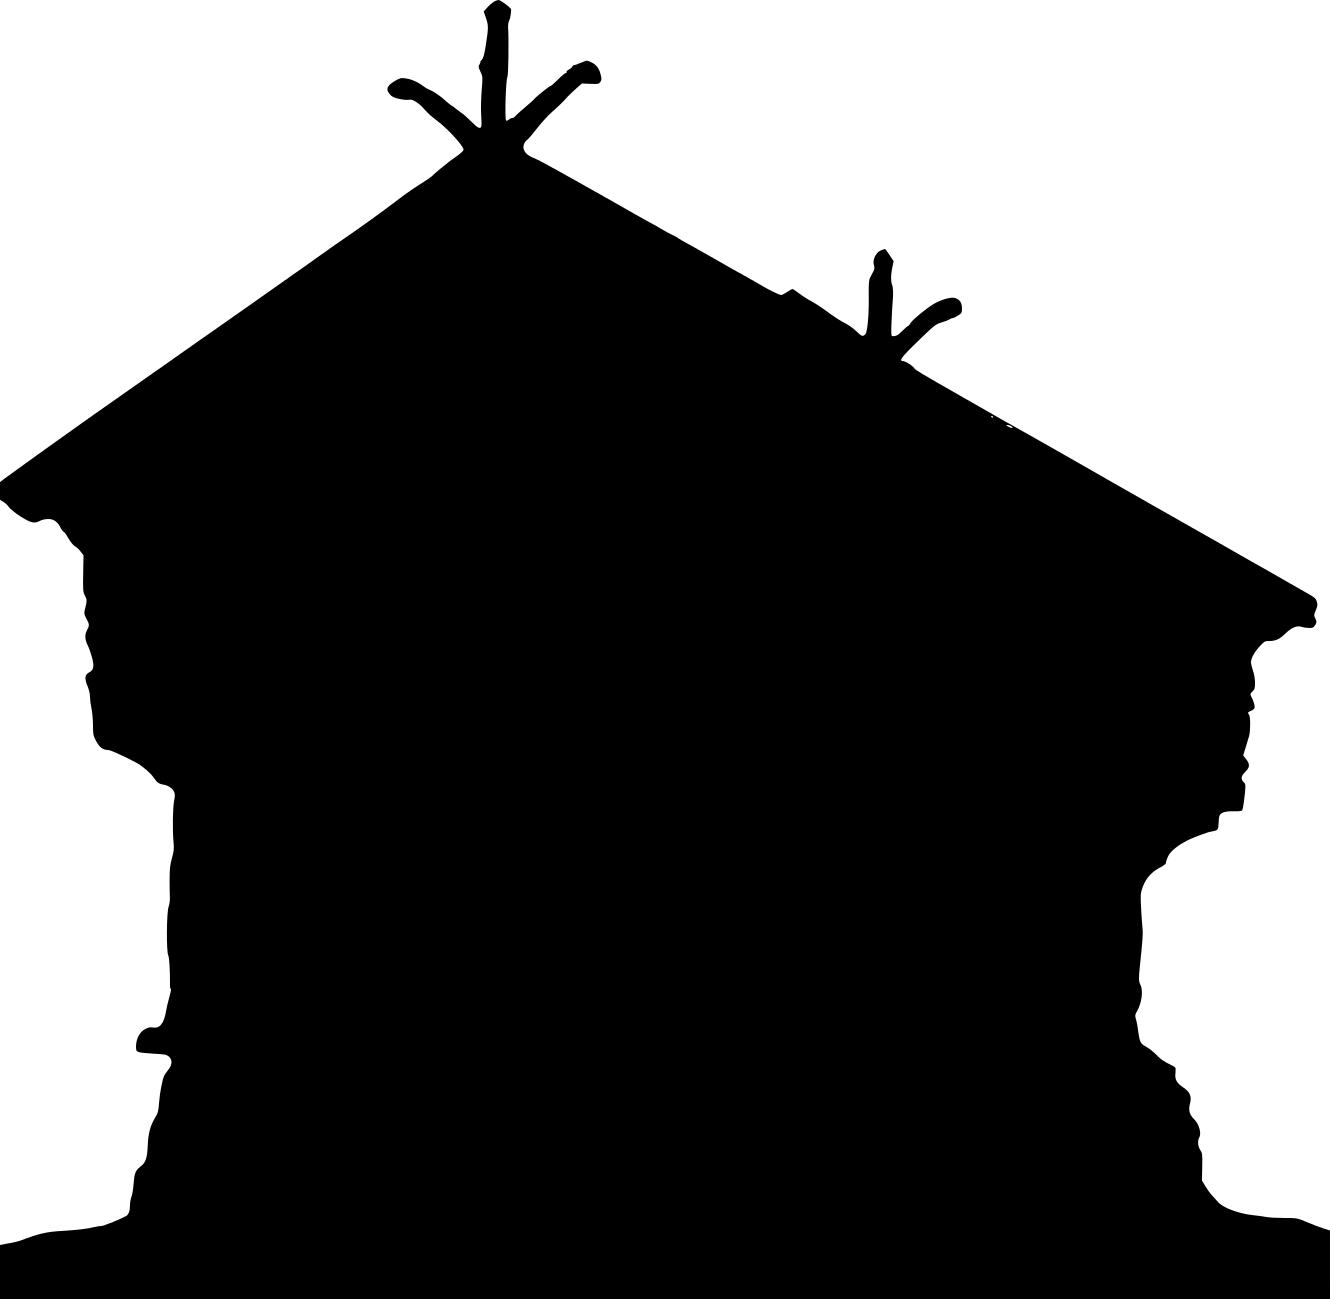 1330x1299 Top House Silhouette Grey Clipart Drawing